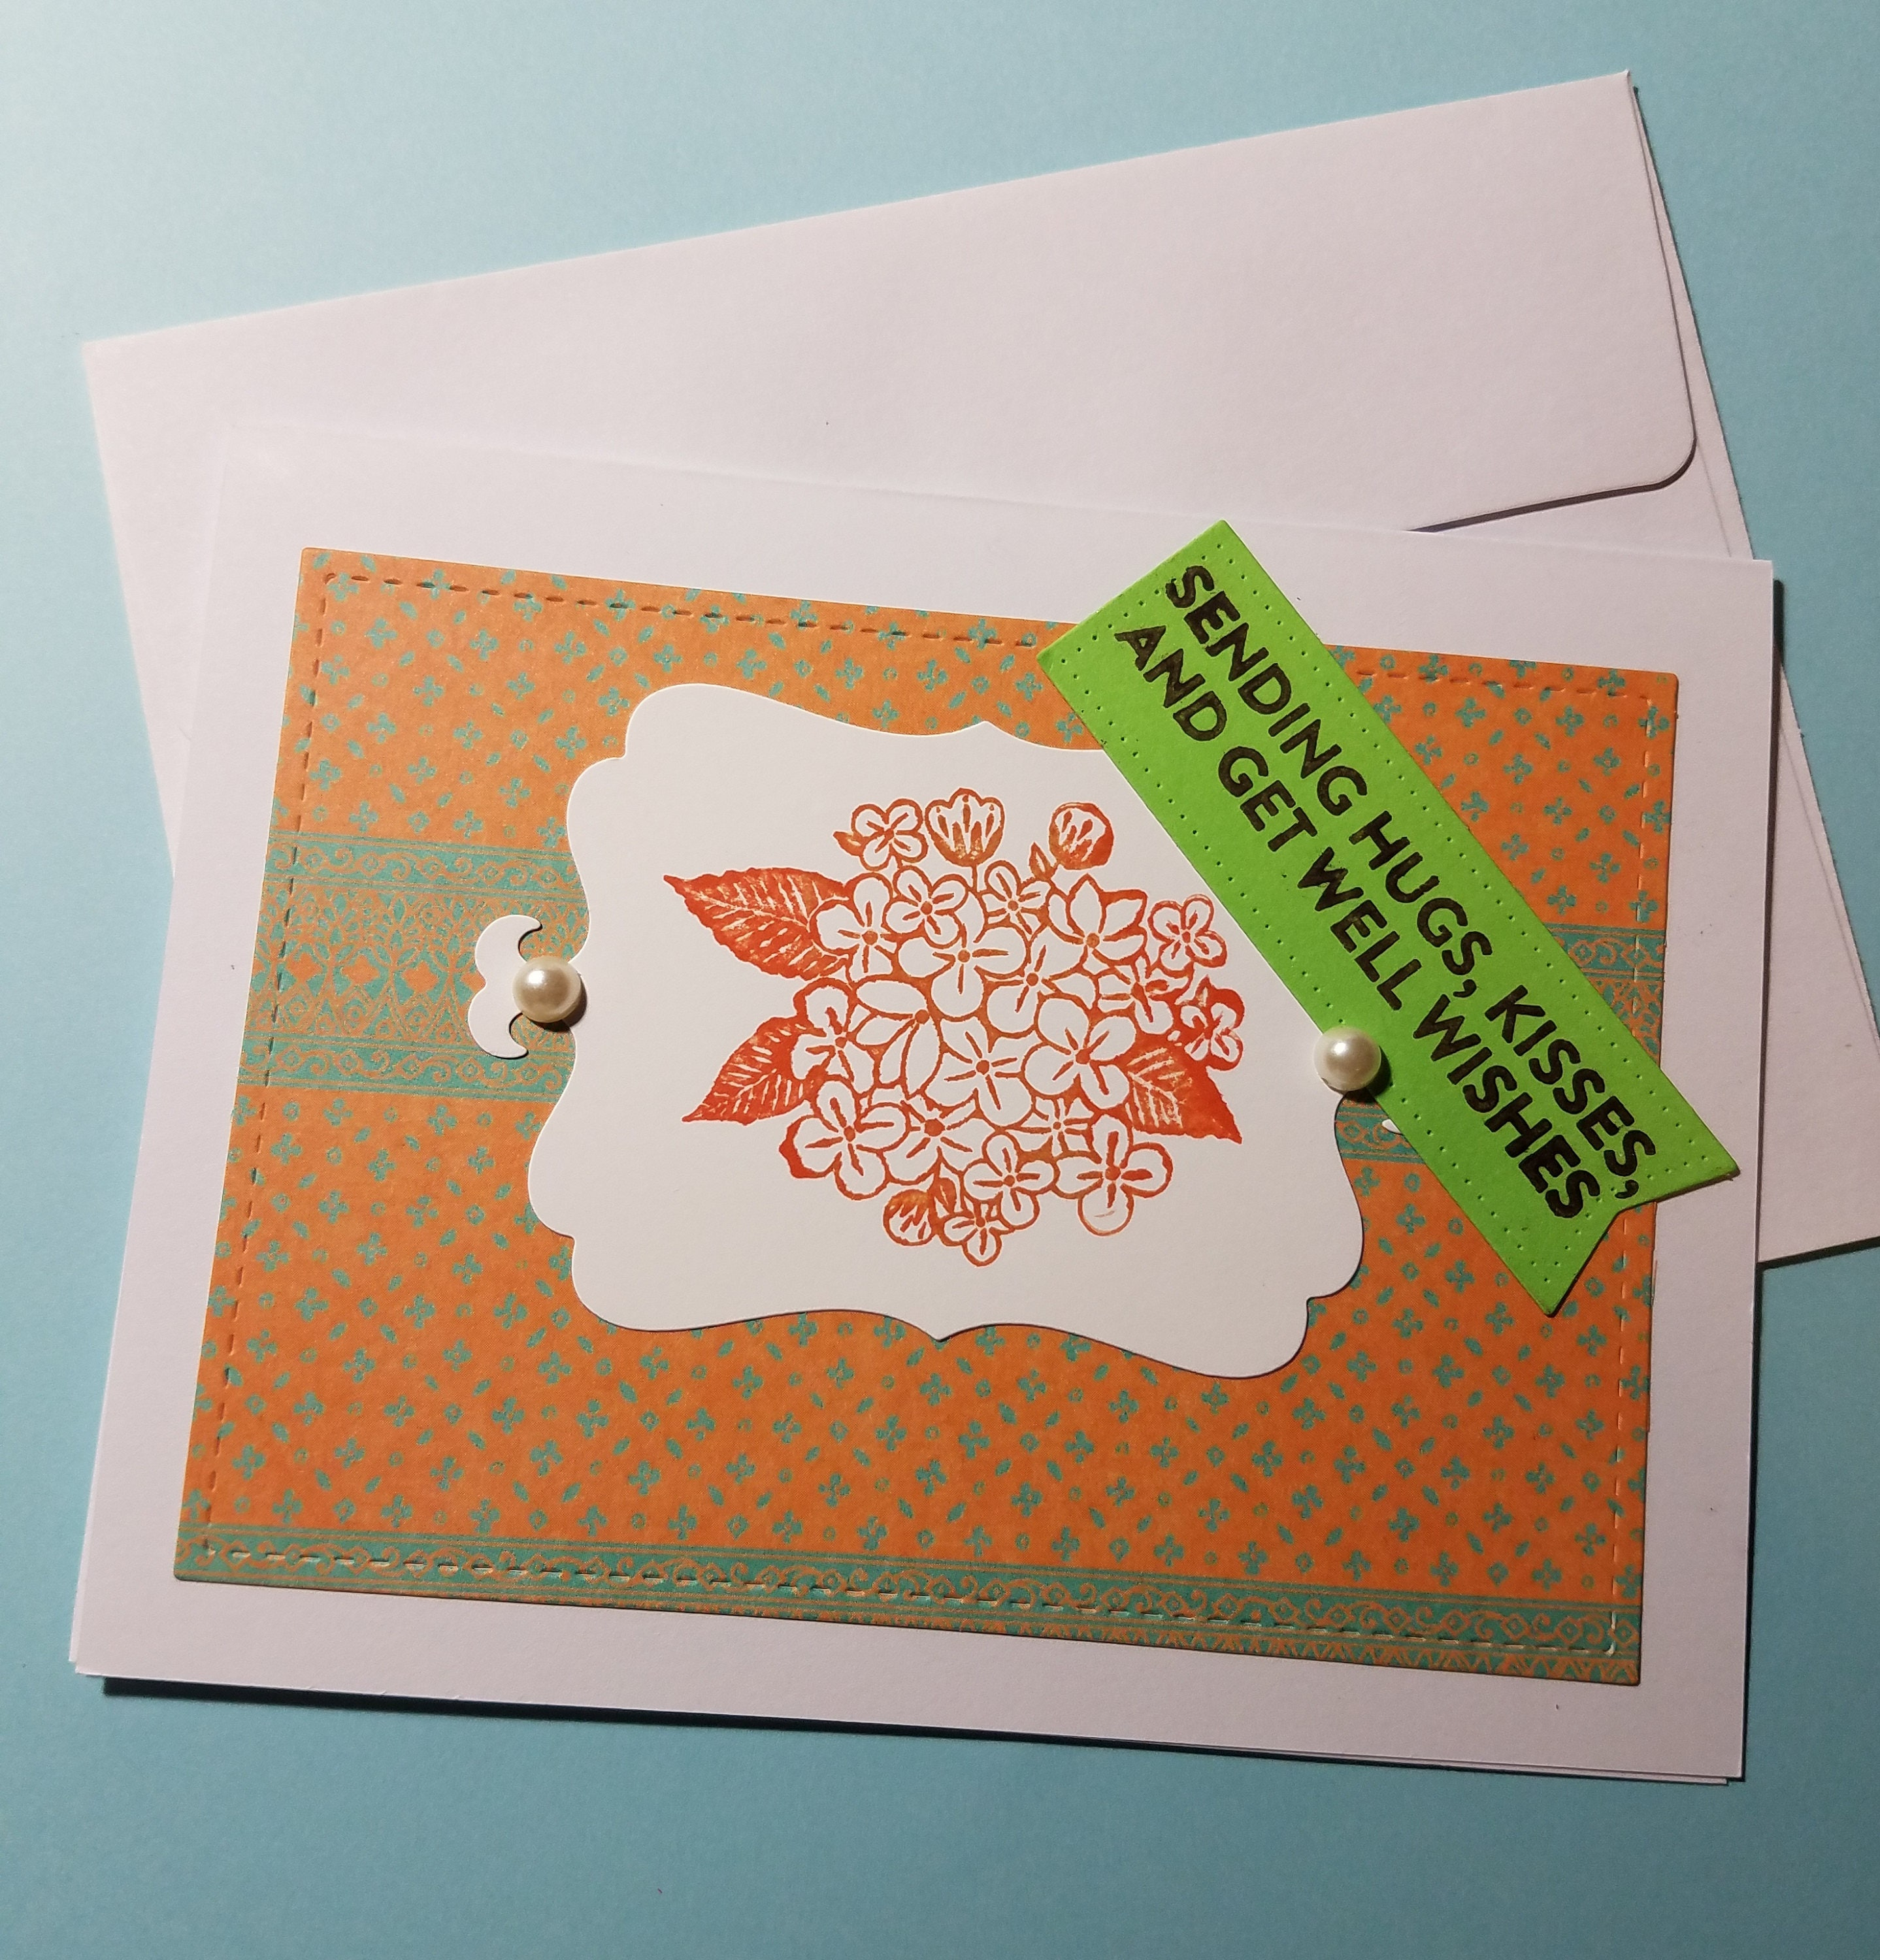 Get Well Card Sympathy Card Sending Hugs Kisses And Get Well